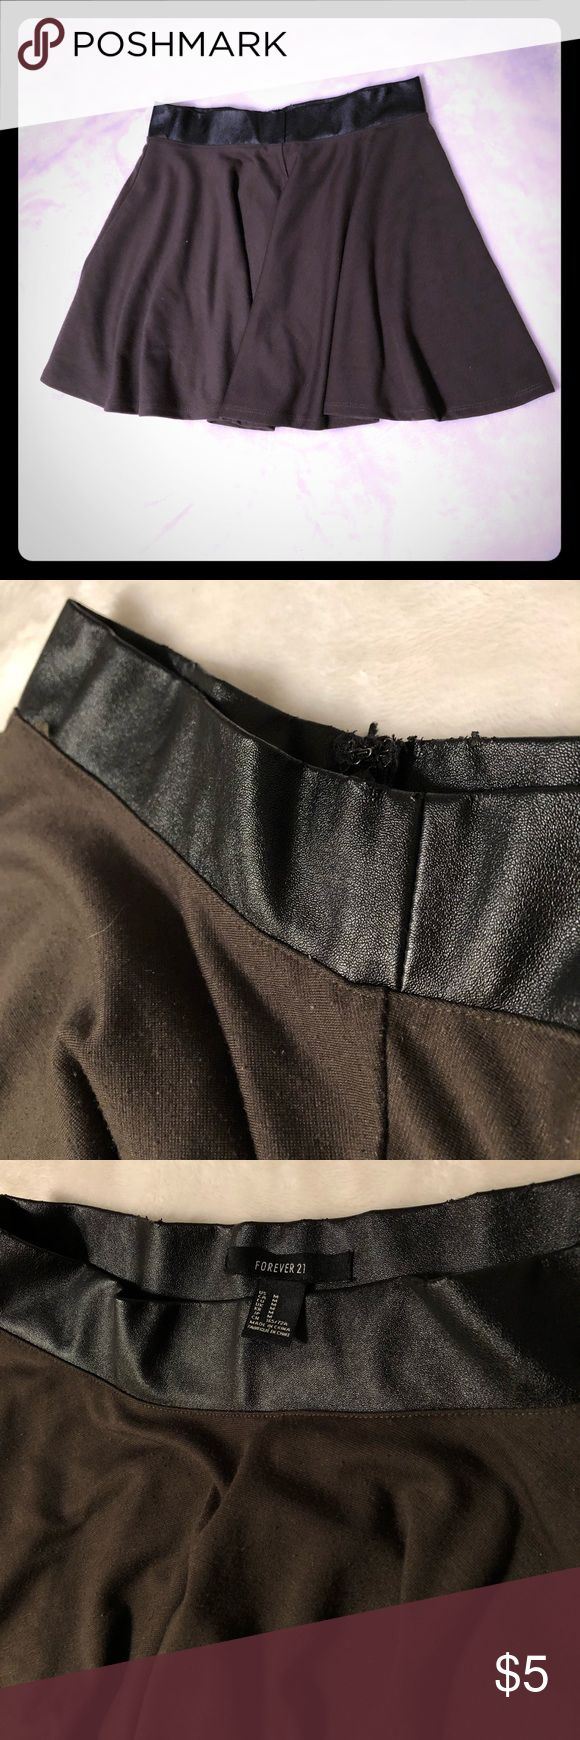 Dark Green Skater Mini Skirt Gently used army green skater skirt with black faux leather waistband by Forever 21. Size medium, and fits true to size. The faux leather trim has a little damage as seen in the pictures, and some slight pilling but otherwise great condition! Forever 21 Skirts Circle & Skater